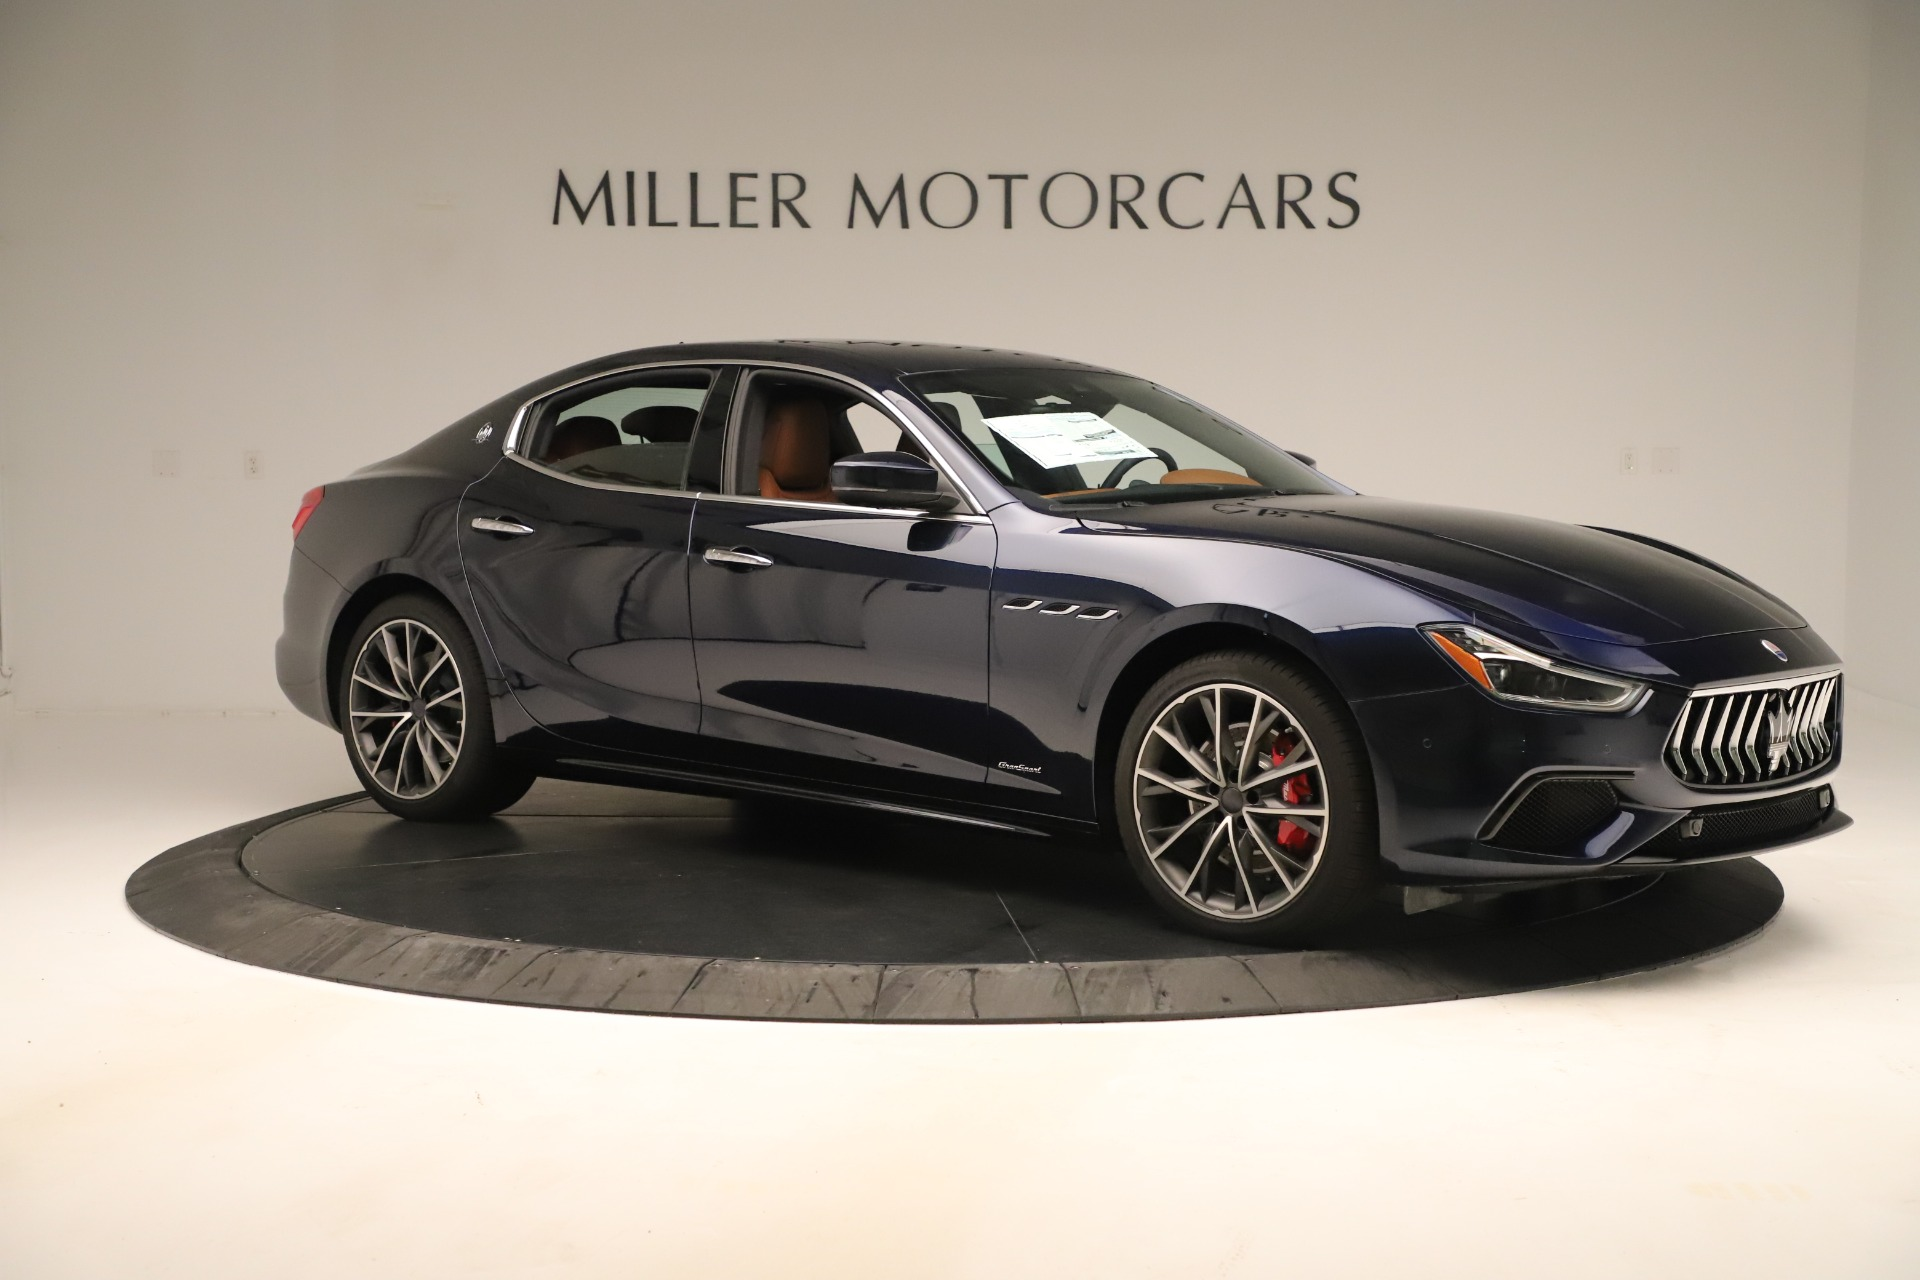 New 2019 Maserati Ghibli S Q4 GranSport For Sale In Westport, CT 2914_p10